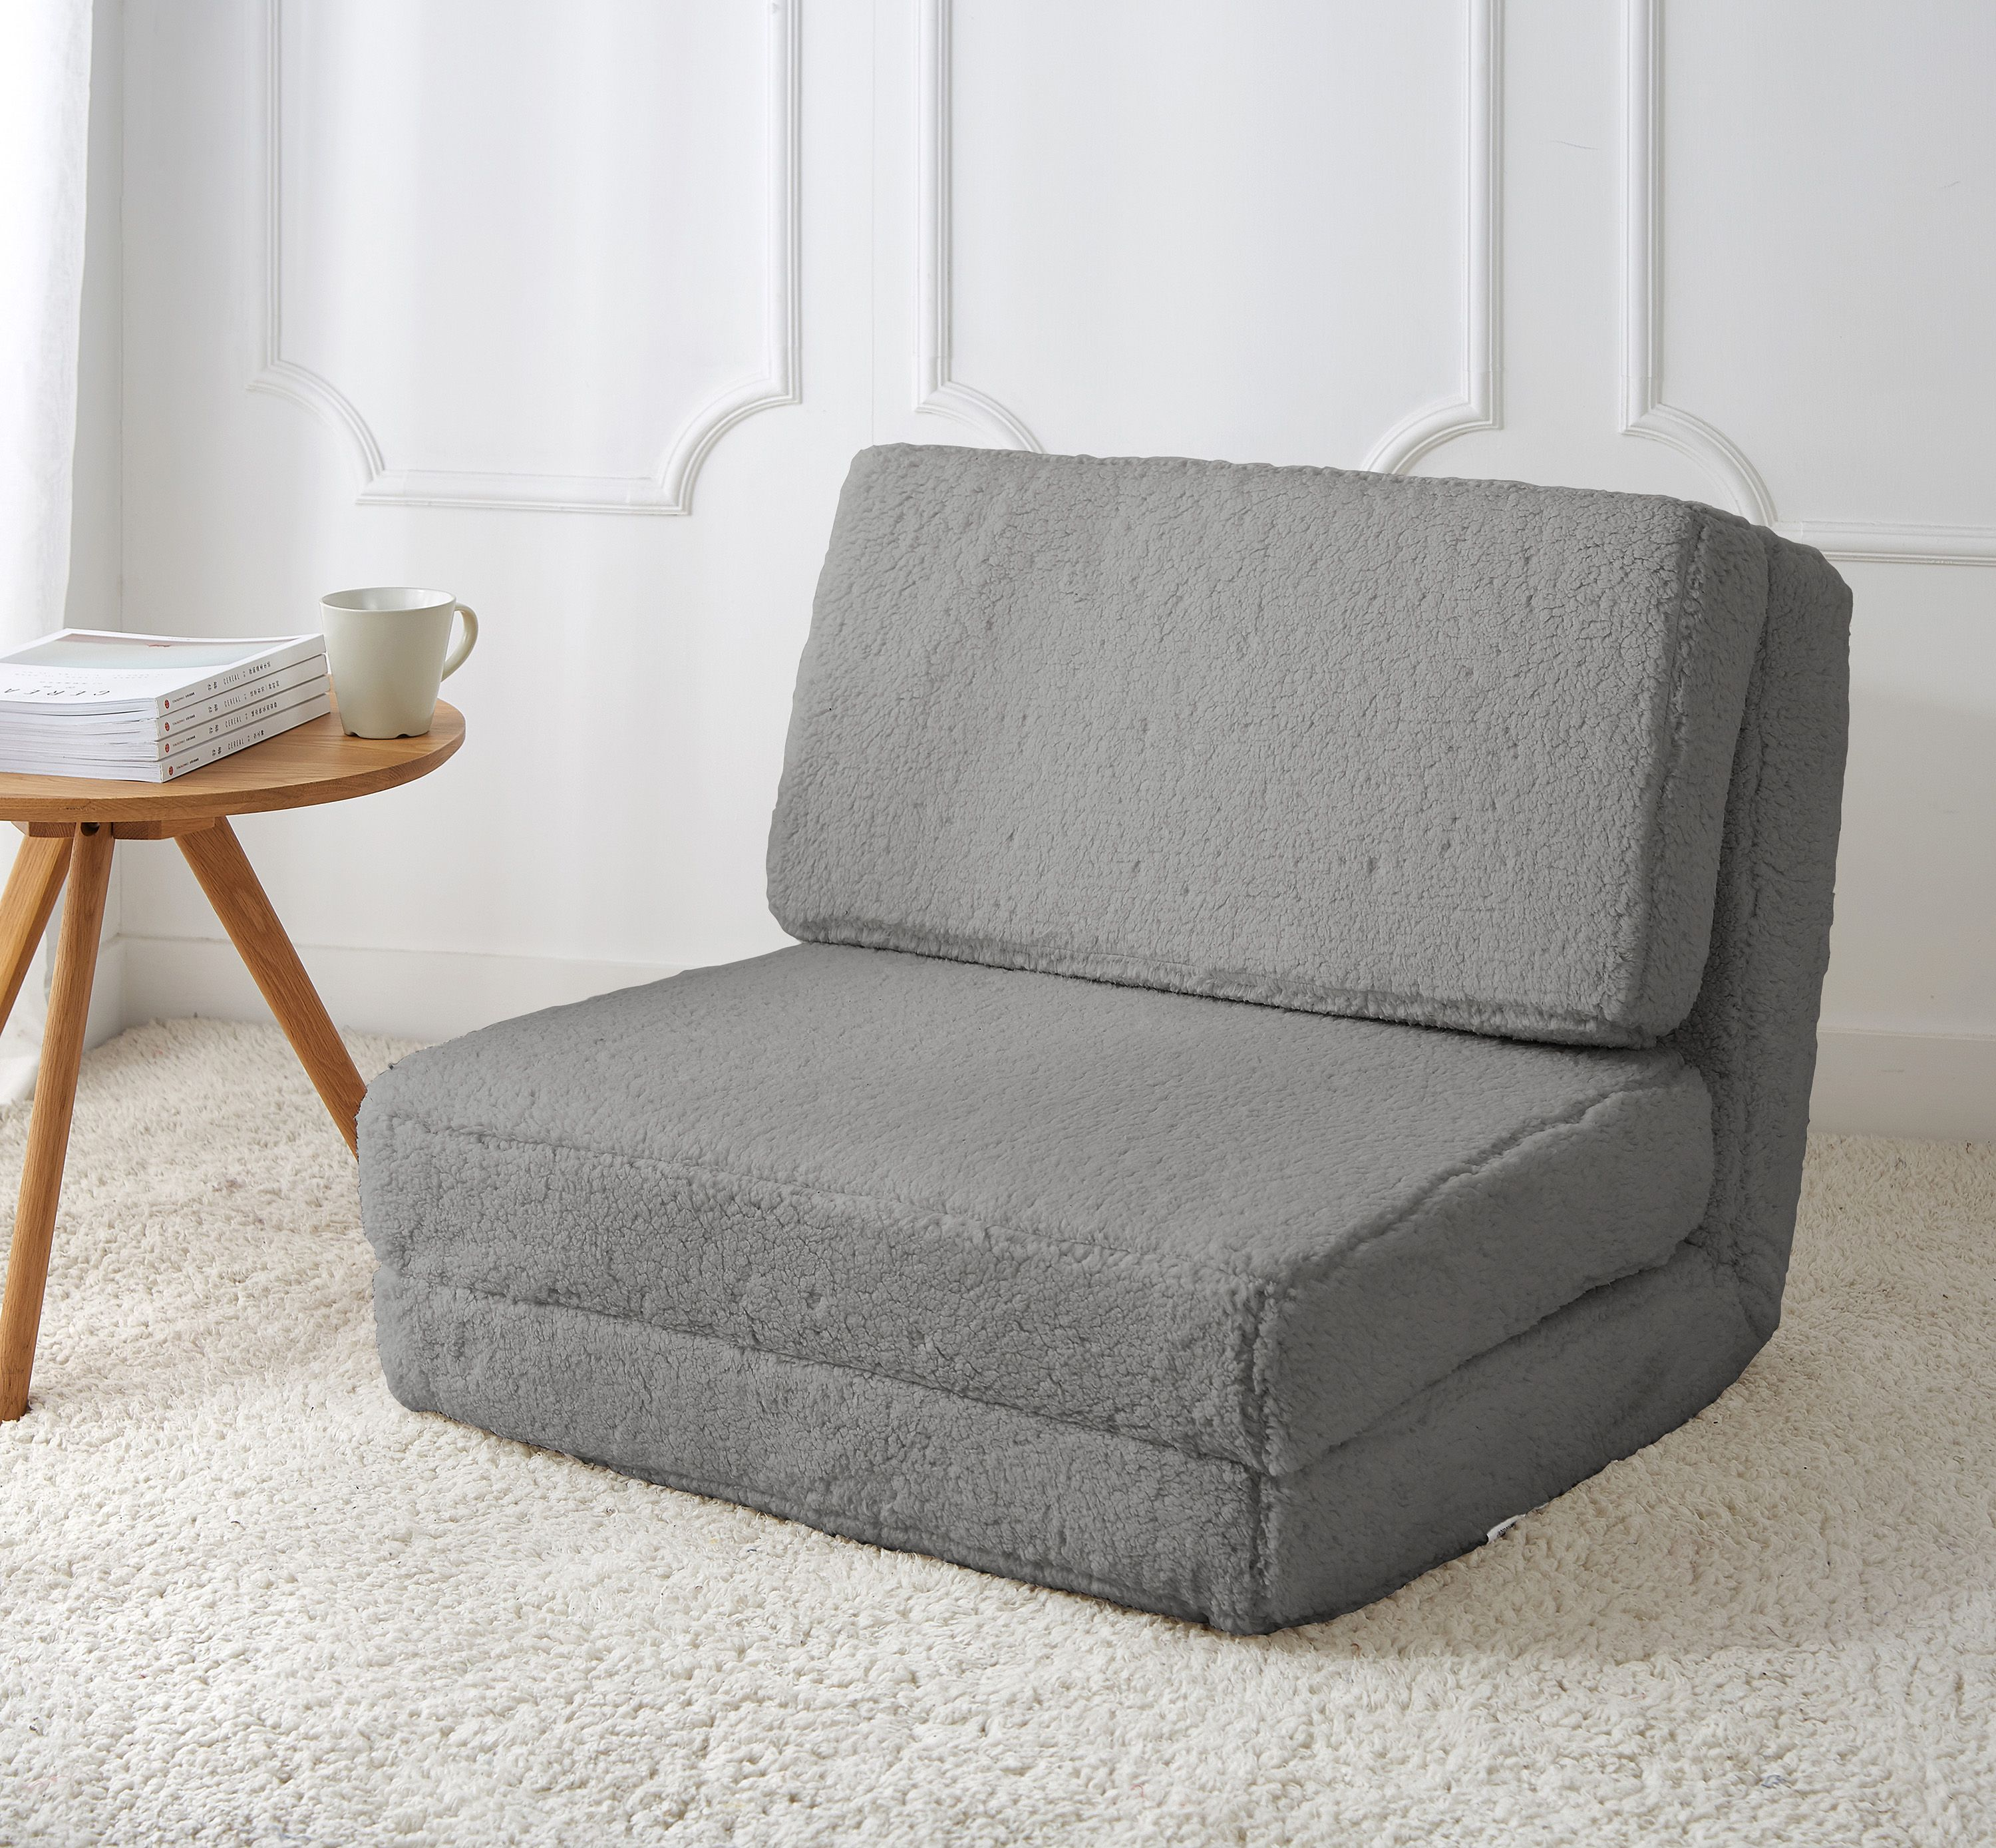 Home In 2020 Small Apartment Room Comfortable Chair Chair